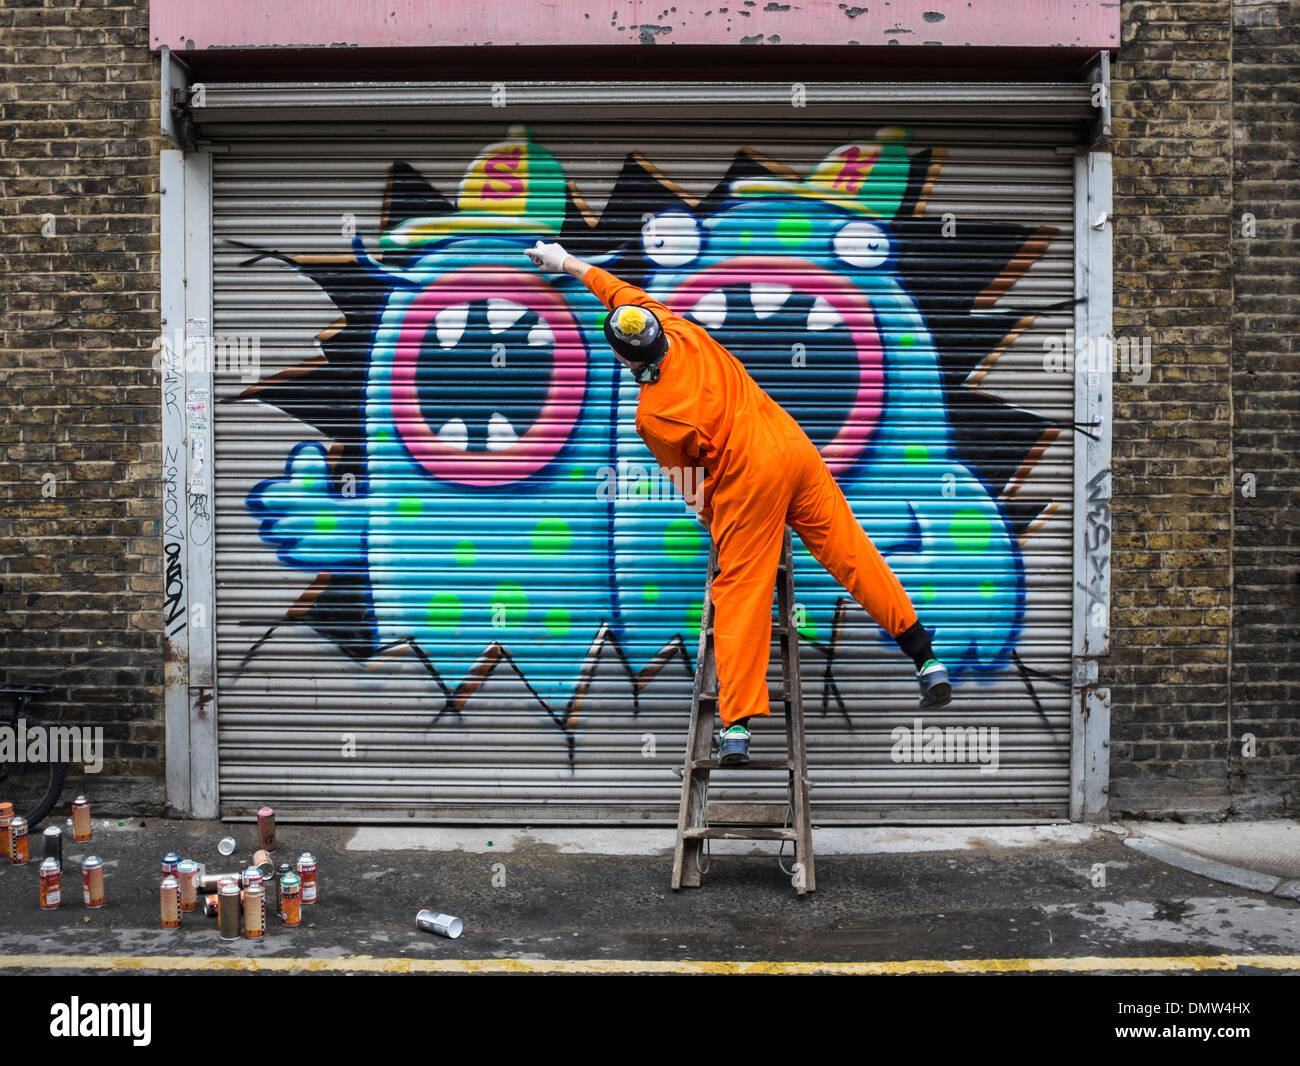 street artist ronzo at work artist uses spray paints to. Black Bedroom Furniture Sets. Home Design Ideas